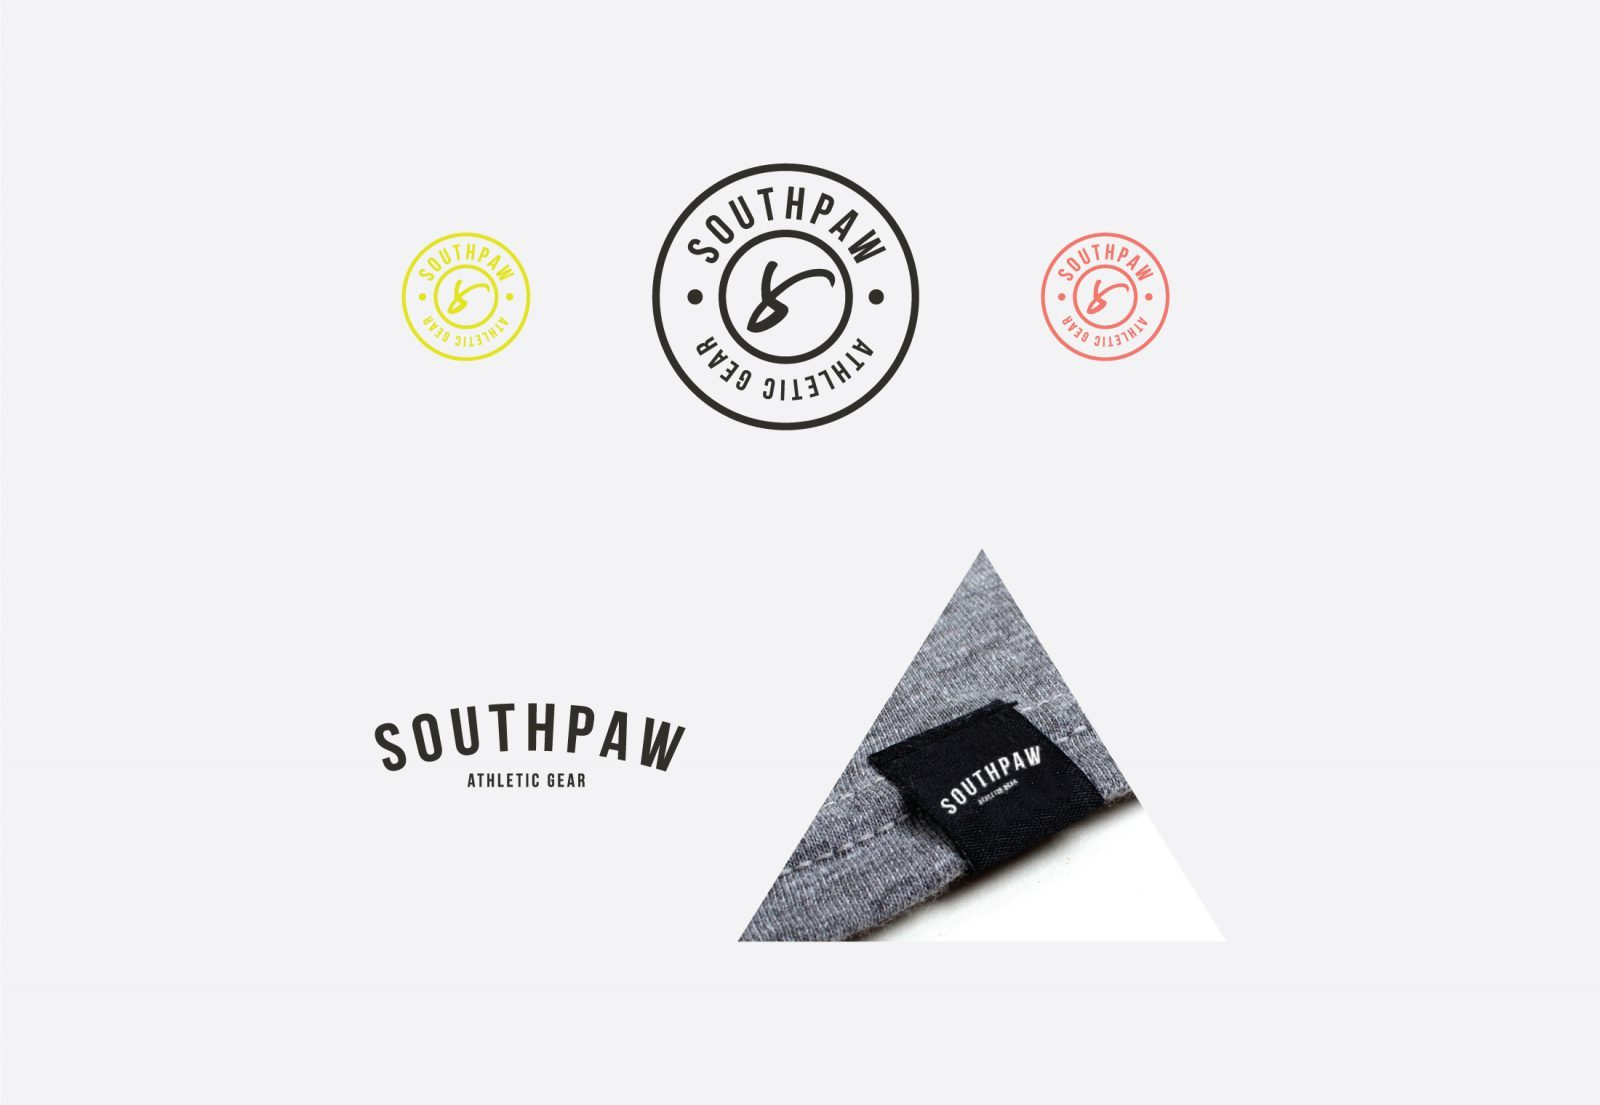 Southpaw Athletic Gear Branding and Logo